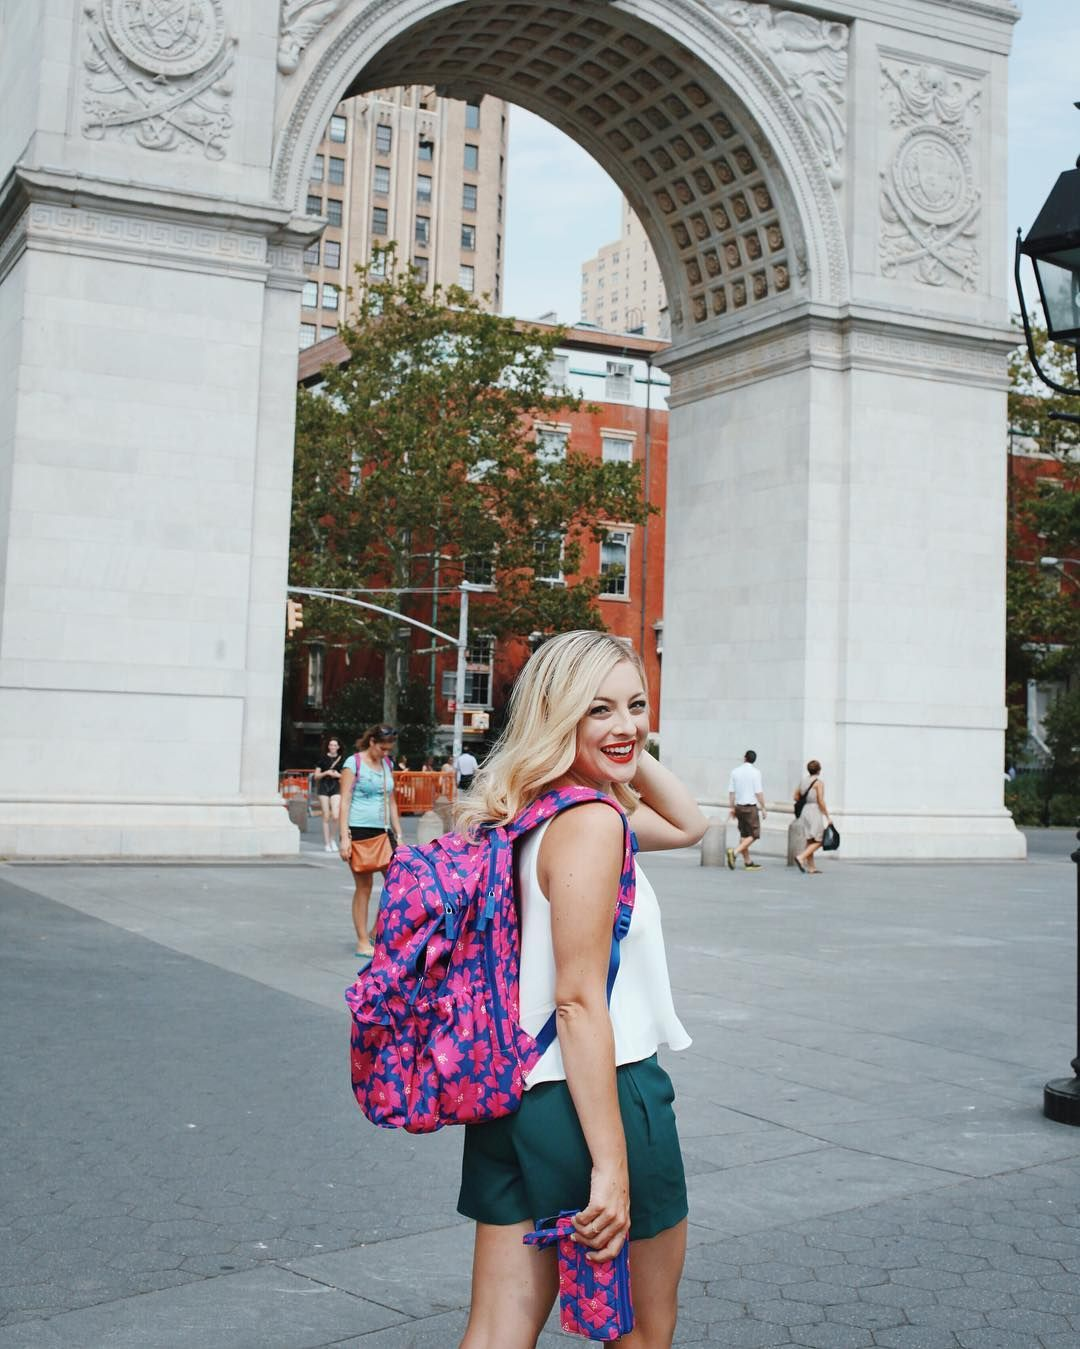 I've teamed up with @cosmpolitan to show you how I rock back-to-school style with @verabradley. First off a bright floral backpack & wristlet paired with a breezy white too & emerald shorts. Stay tuned all day for my favorite looks! #ad